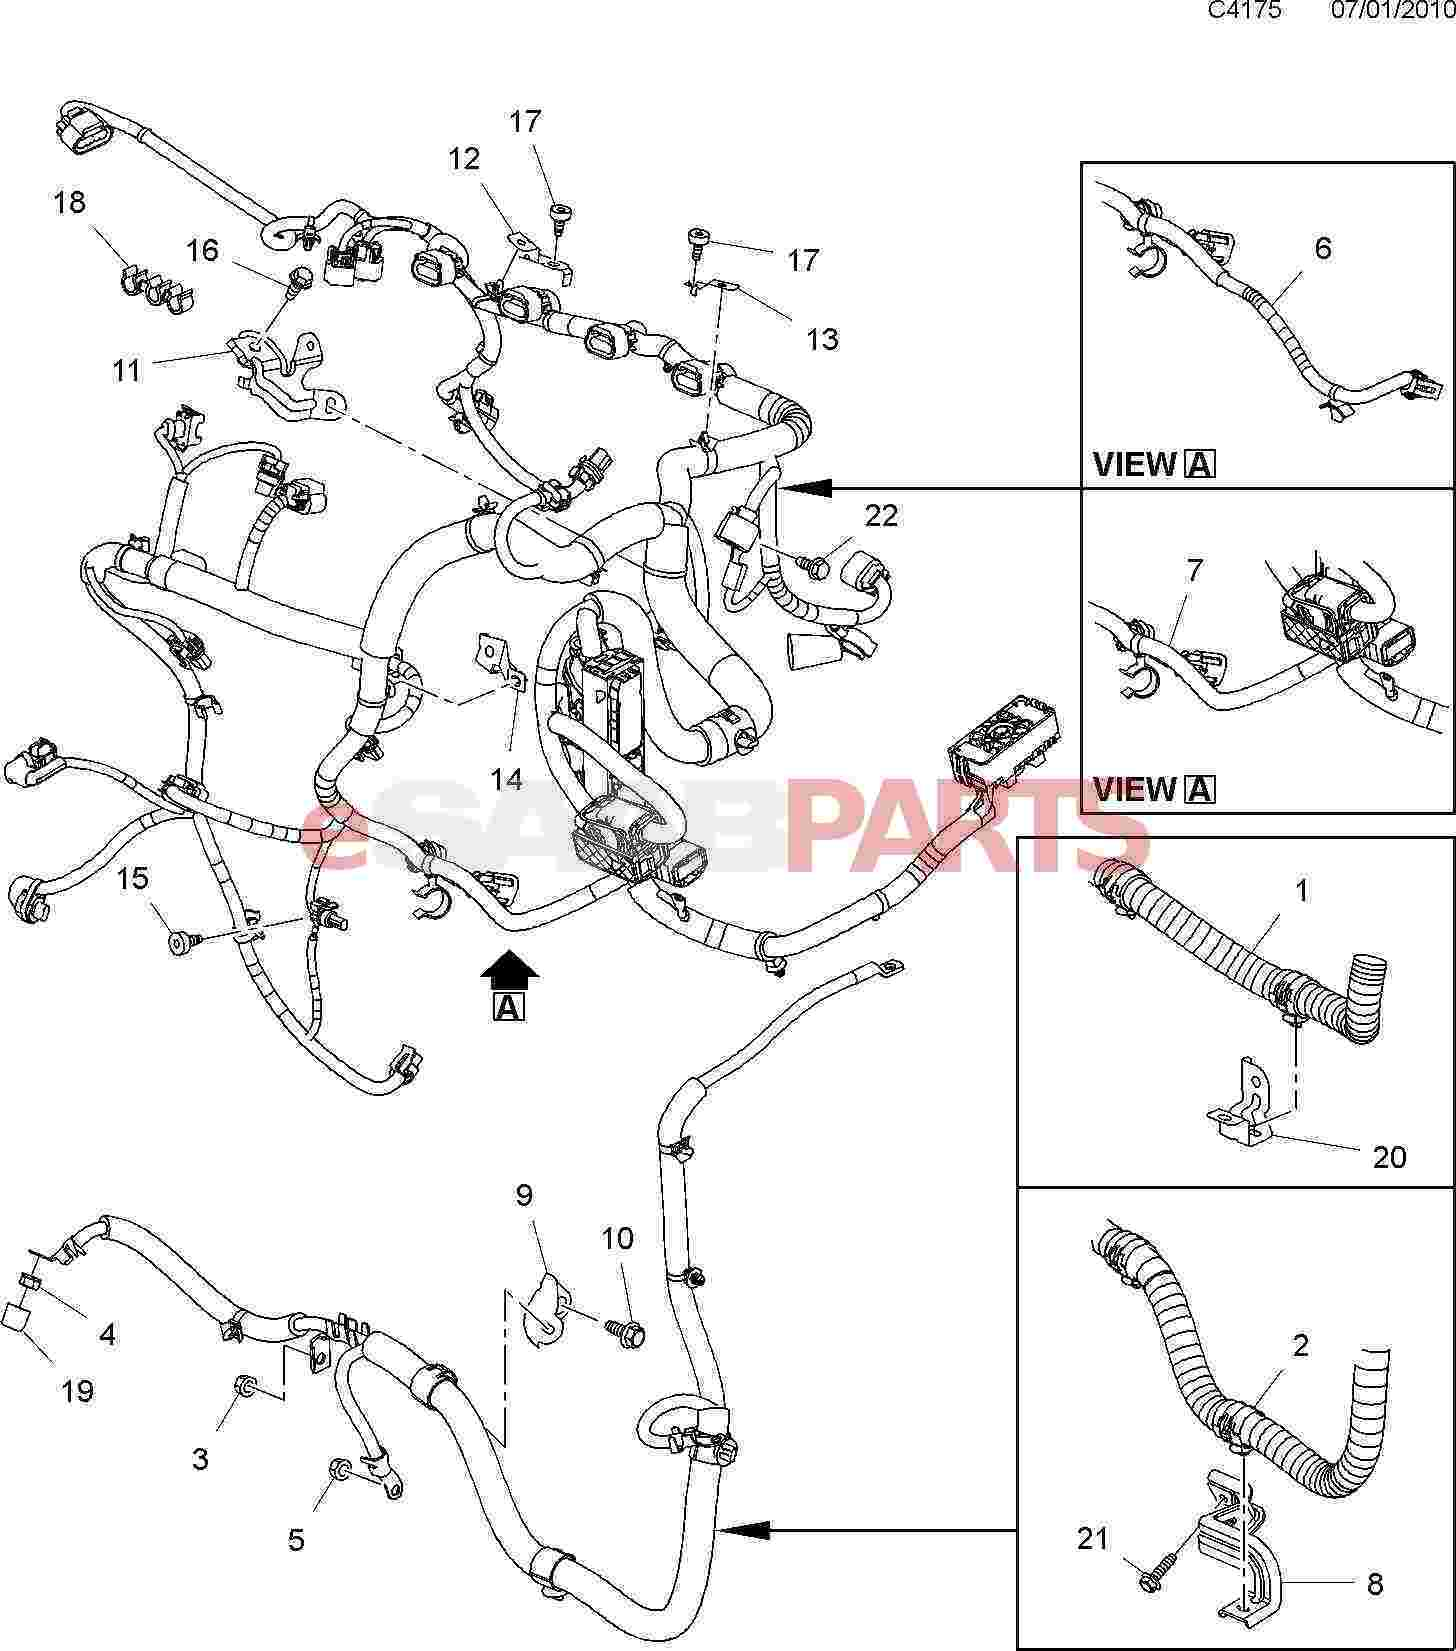 11588564 saab screw genuine saab parts from esaabparts com rh esaabparts com Saab 9 3 Electric Diagram Saab 9-3 Engine Diagram